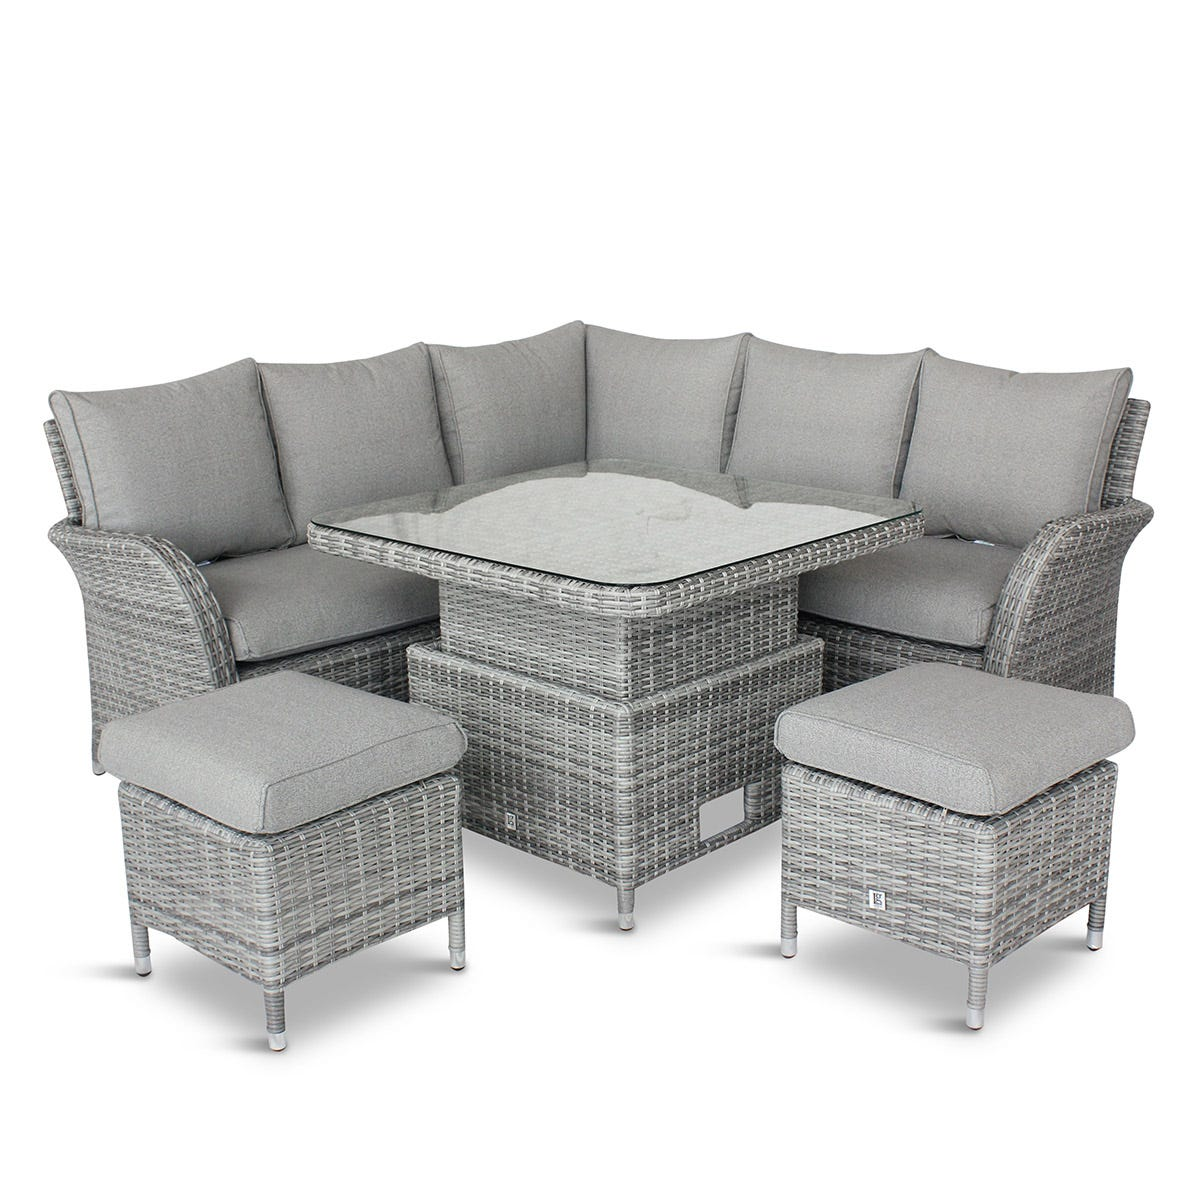 LG Outdoor Monaco Stone Compact Dining Modular with Adjustable Table